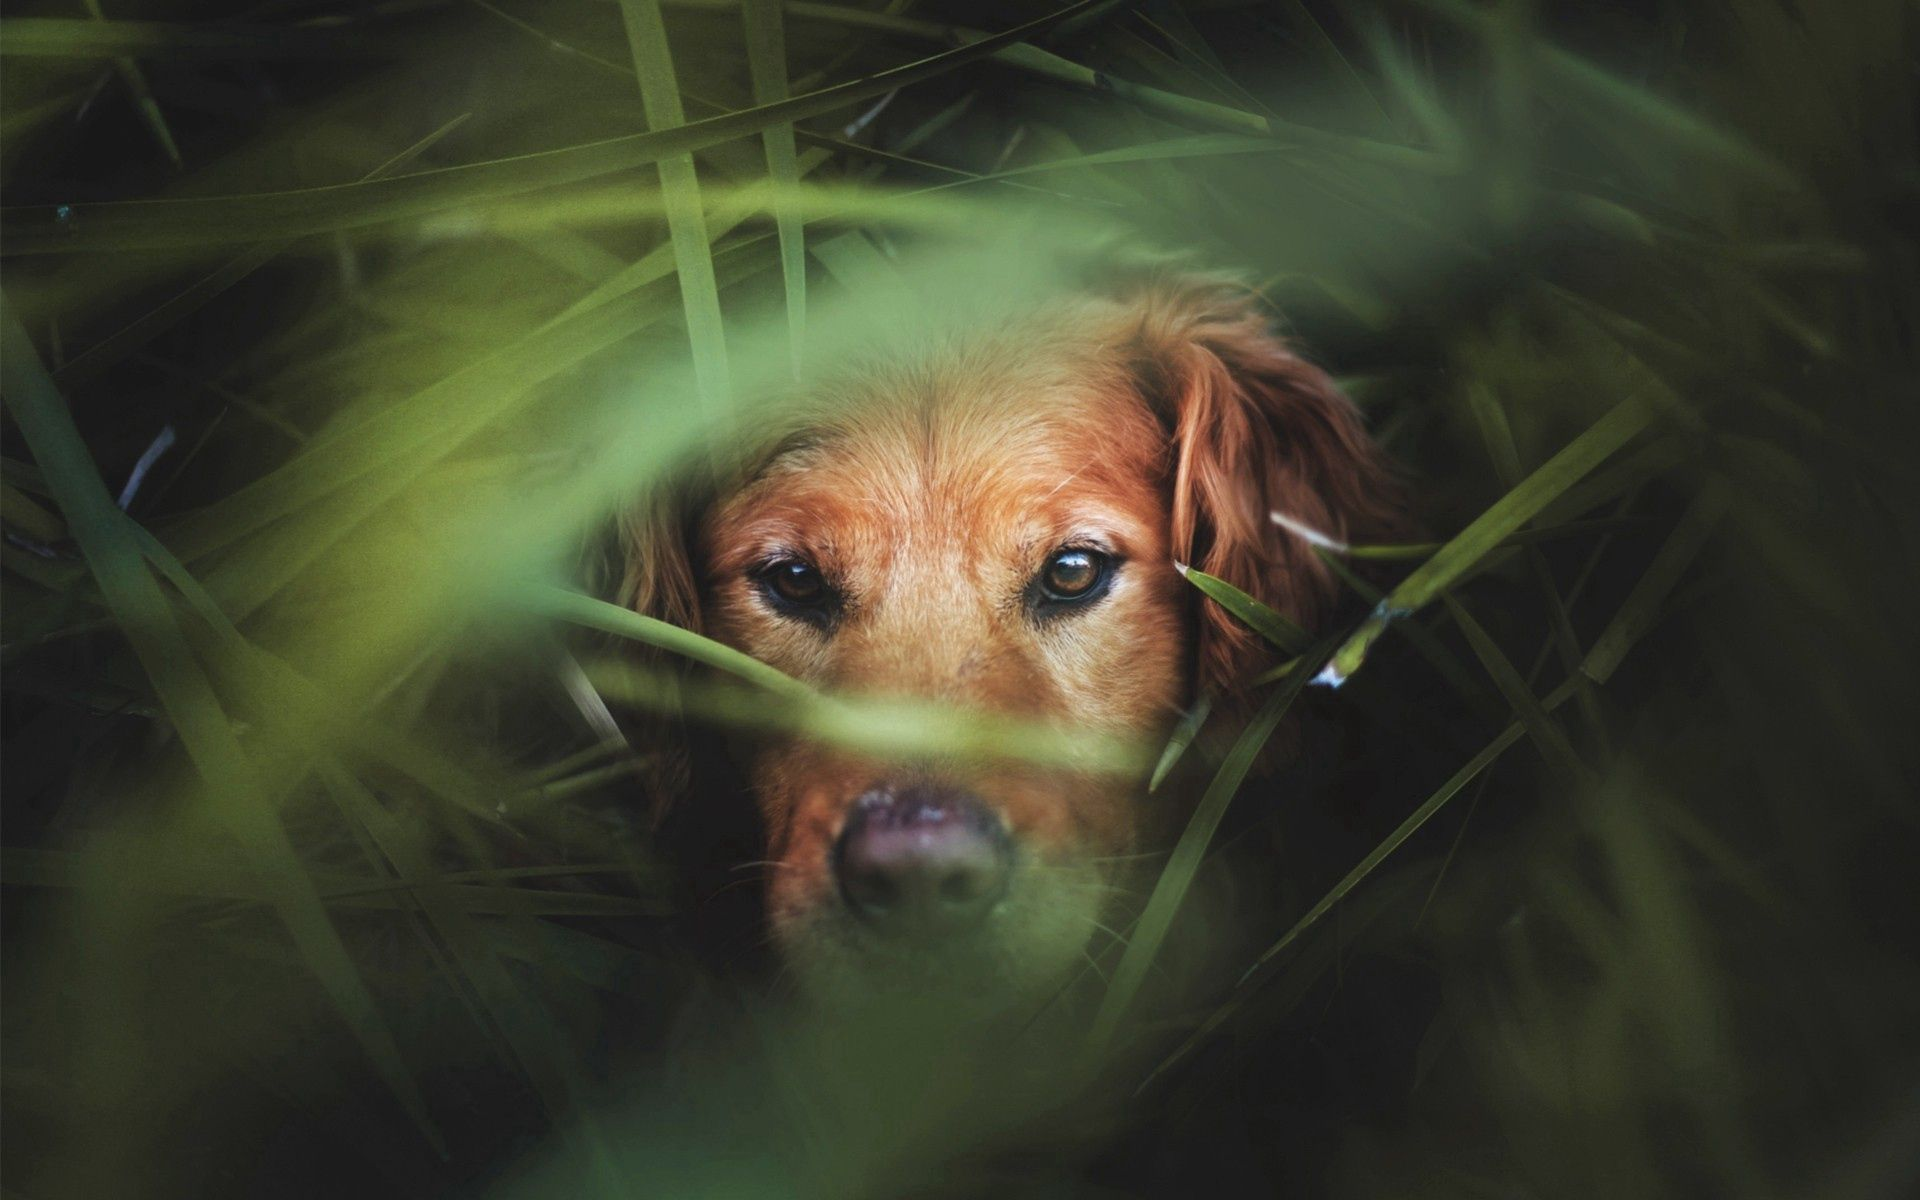 156587 download wallpaper Animals, Dog, Muzzle, Grass, Hunting, Hunt screensavers and pictures for free